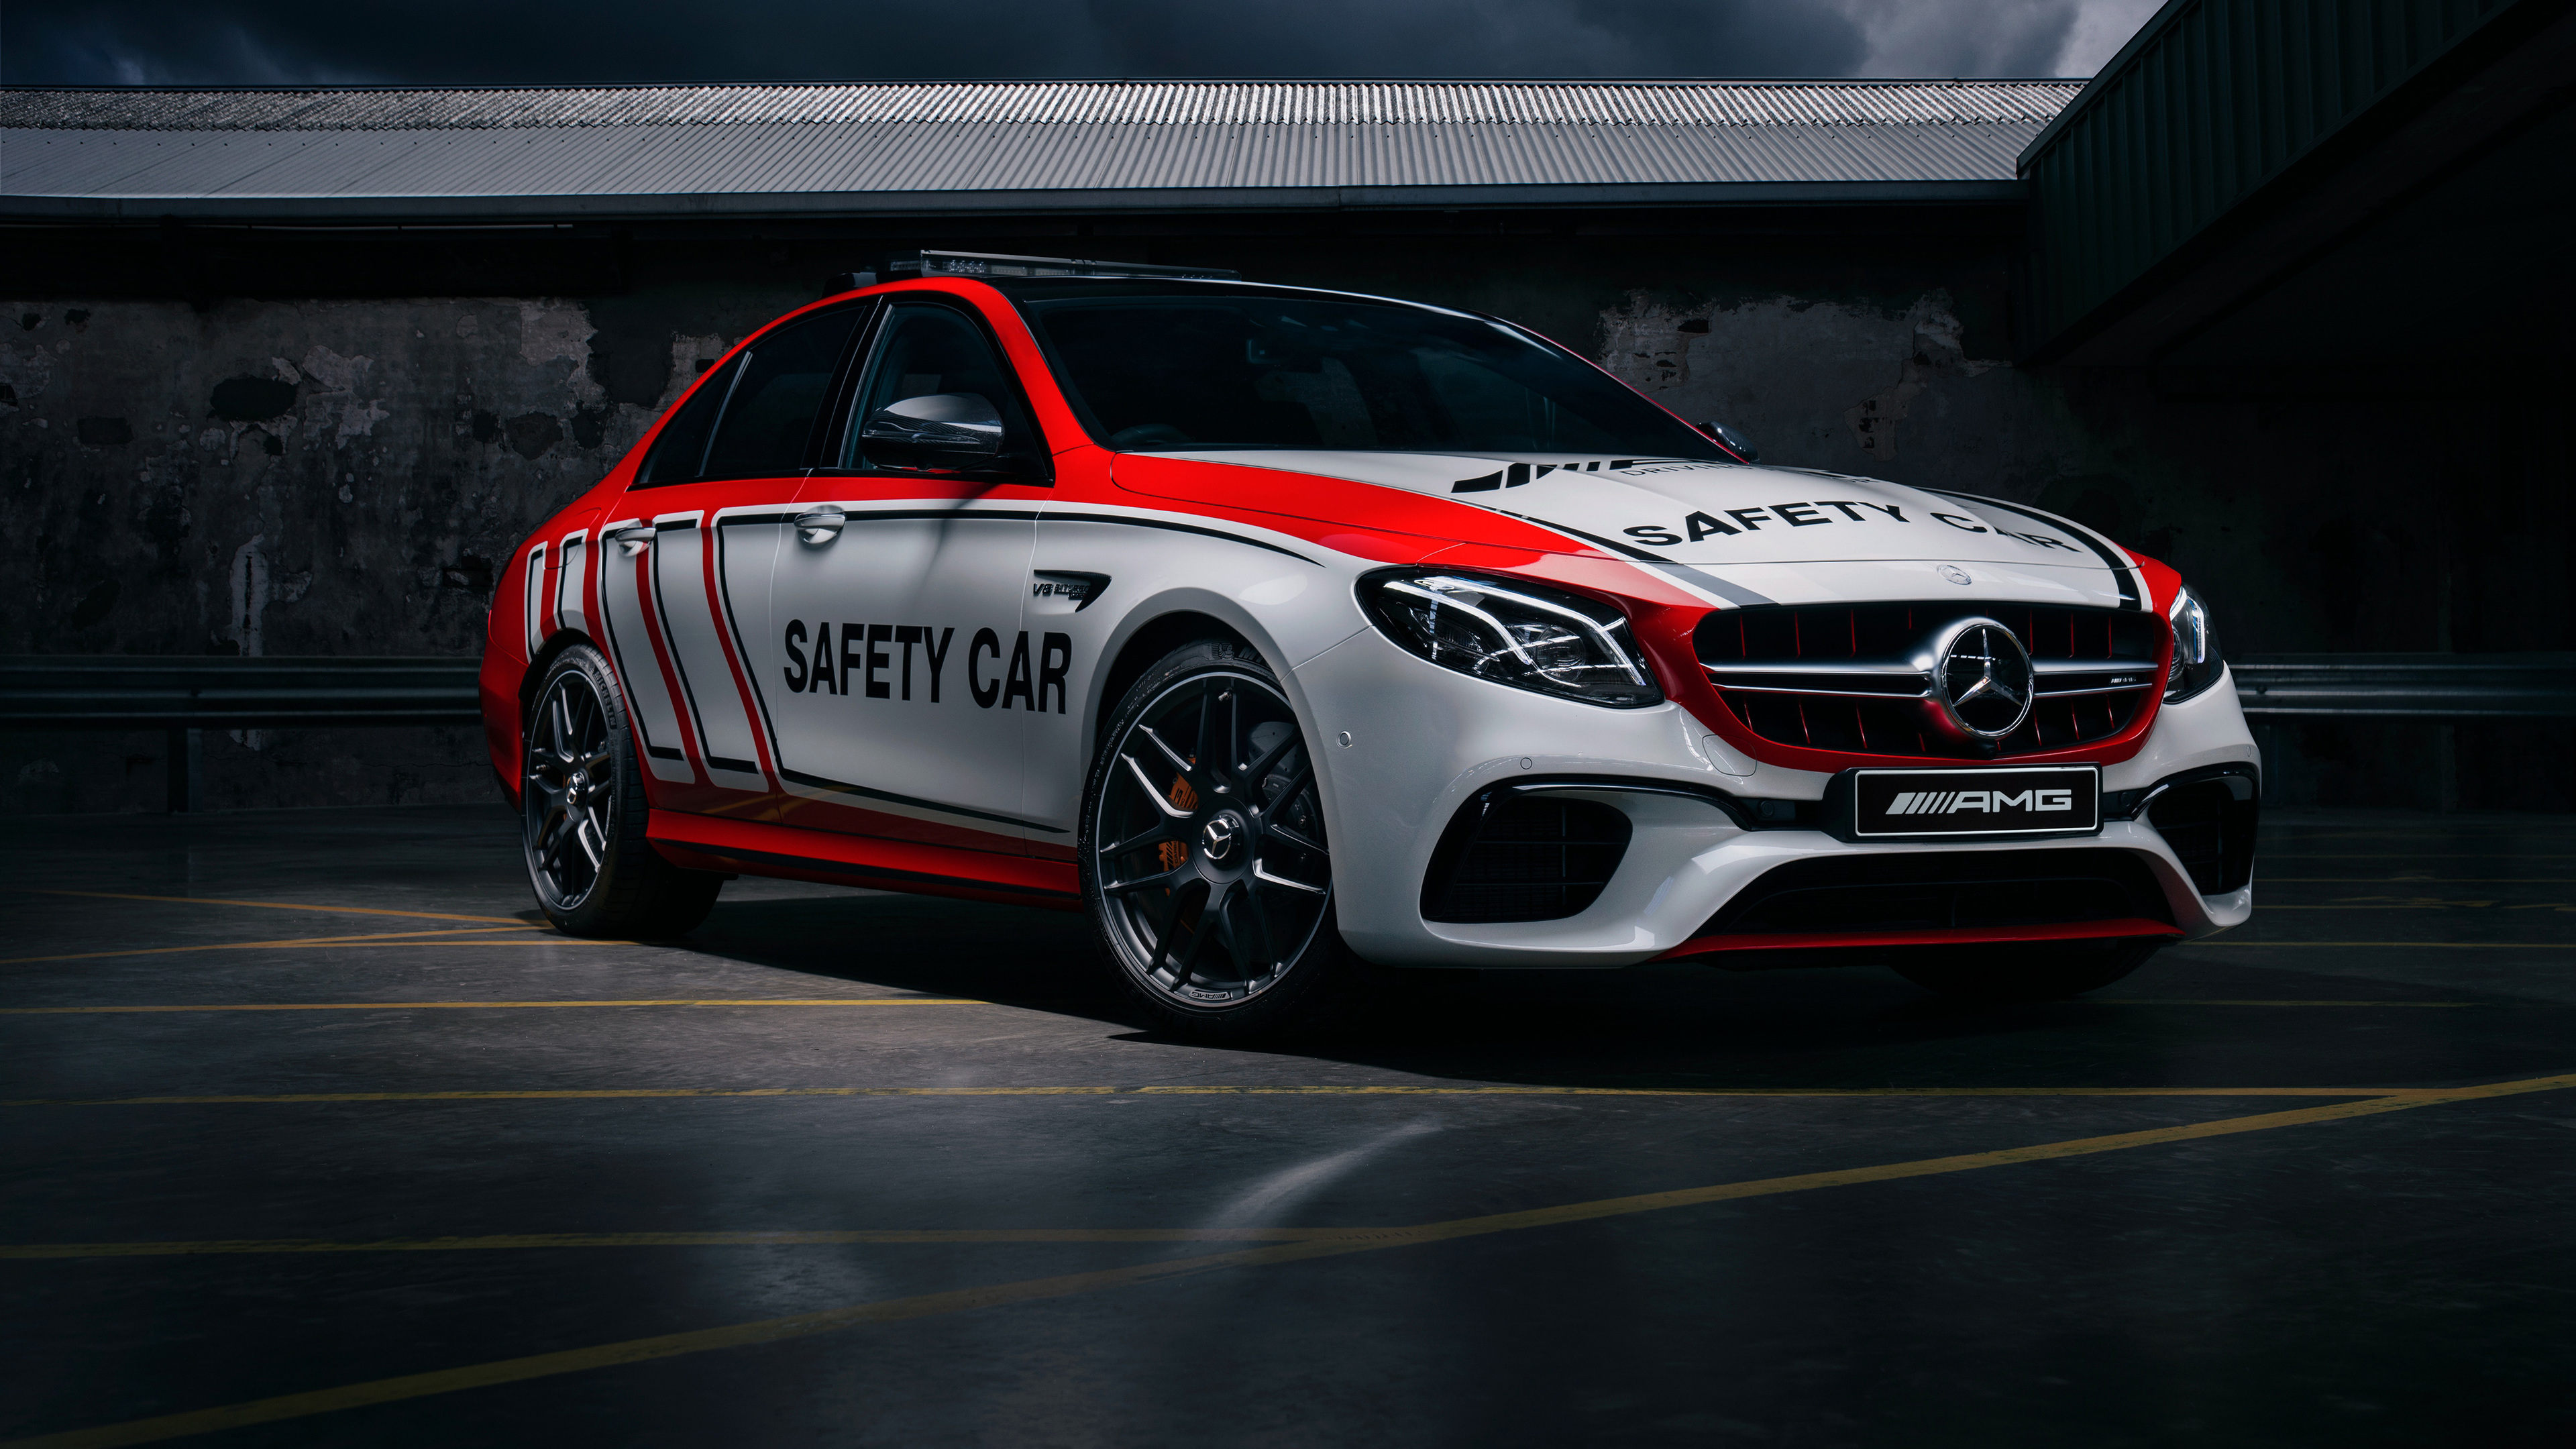 mercedes amg e 63 safety car 2018 1539109134 - Mercedes AMG E 63 Safety Car 2018 - mercedes wallpapers, mercedes amg wallpapers, hd-wallpapers, cars wallpapers, 4k-wallpapers, 2018 cars wallpapers